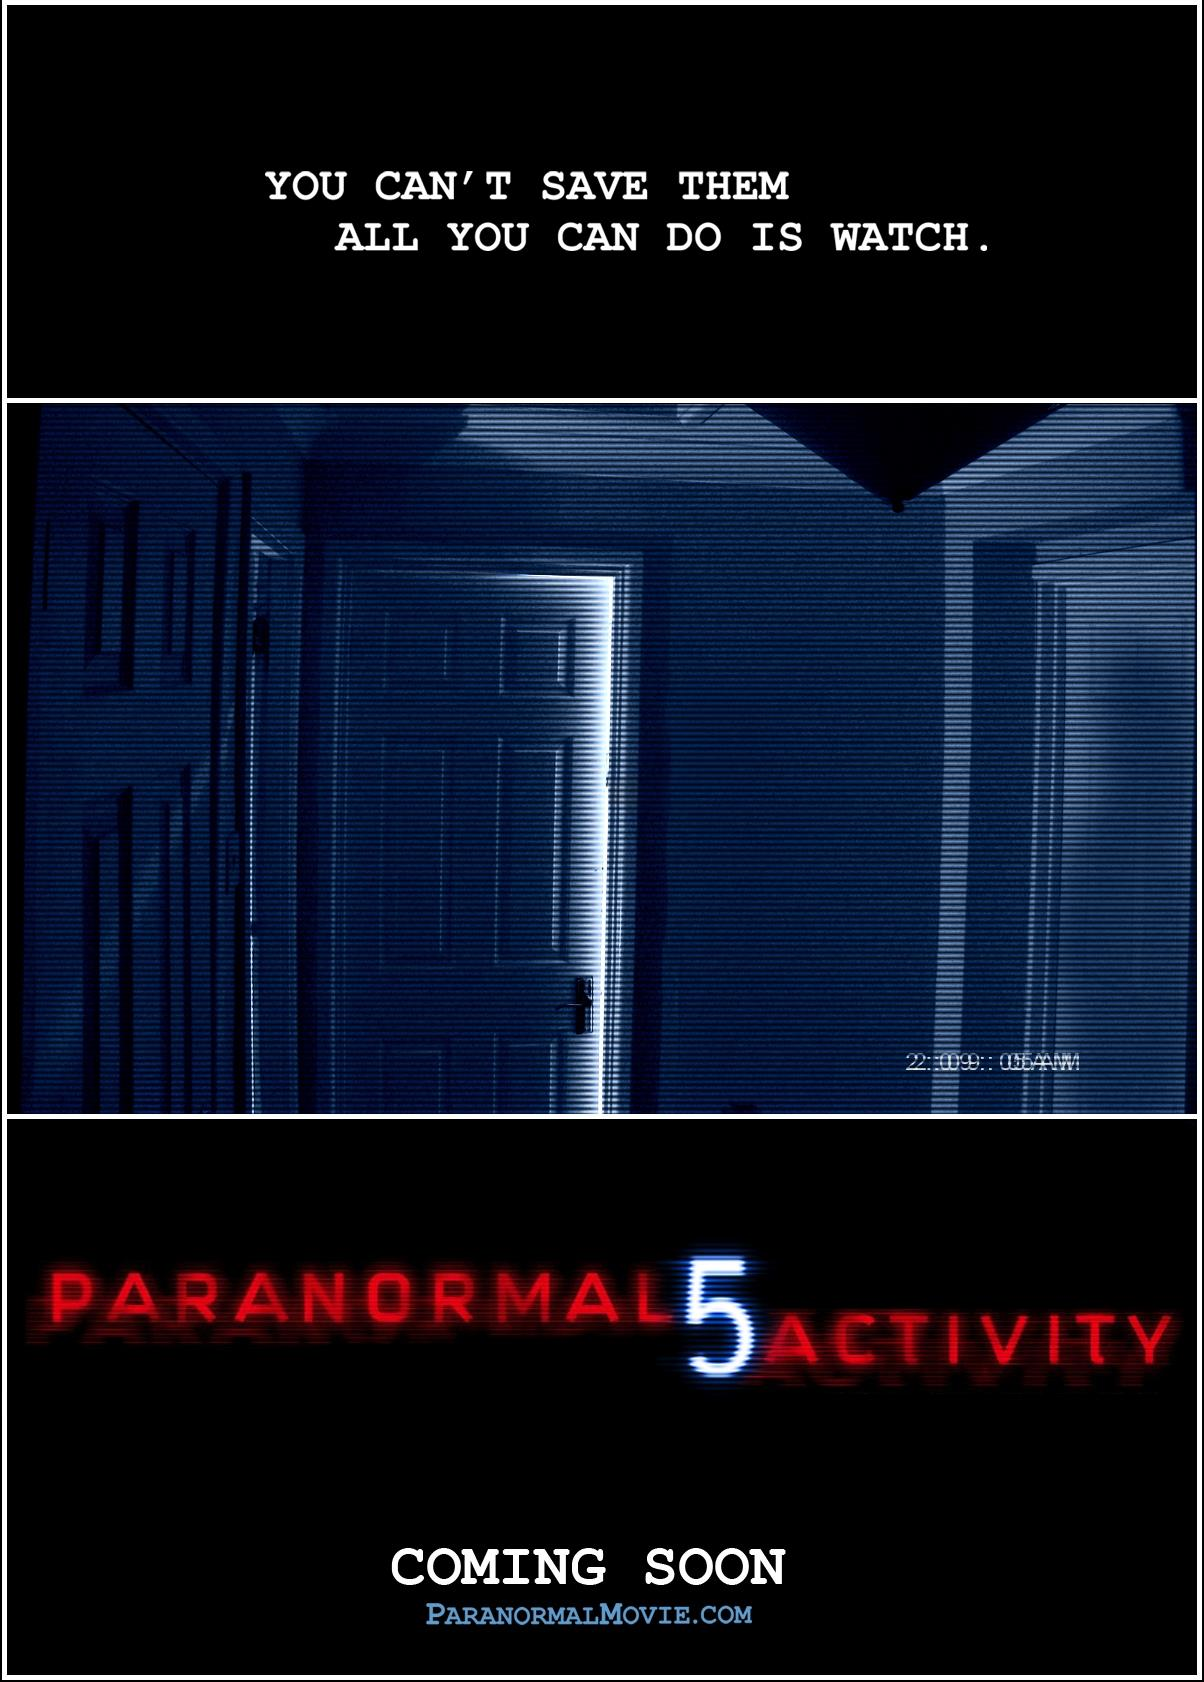 1666-v-activite-paranormale-5-vf-de-paranormal-activity-the-ghost-dimension